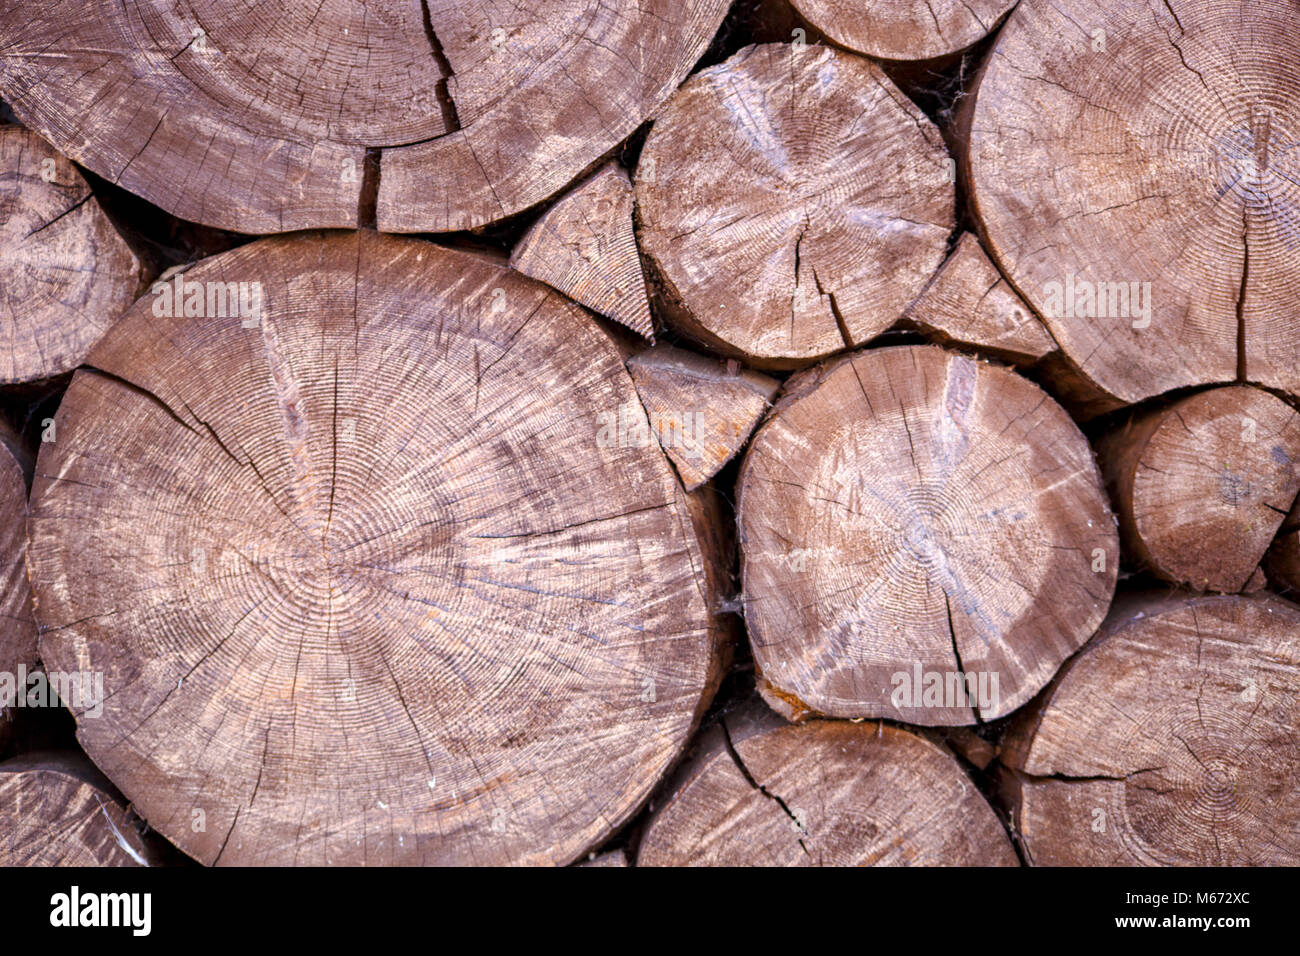 Photo of felled round logs - Stock Image